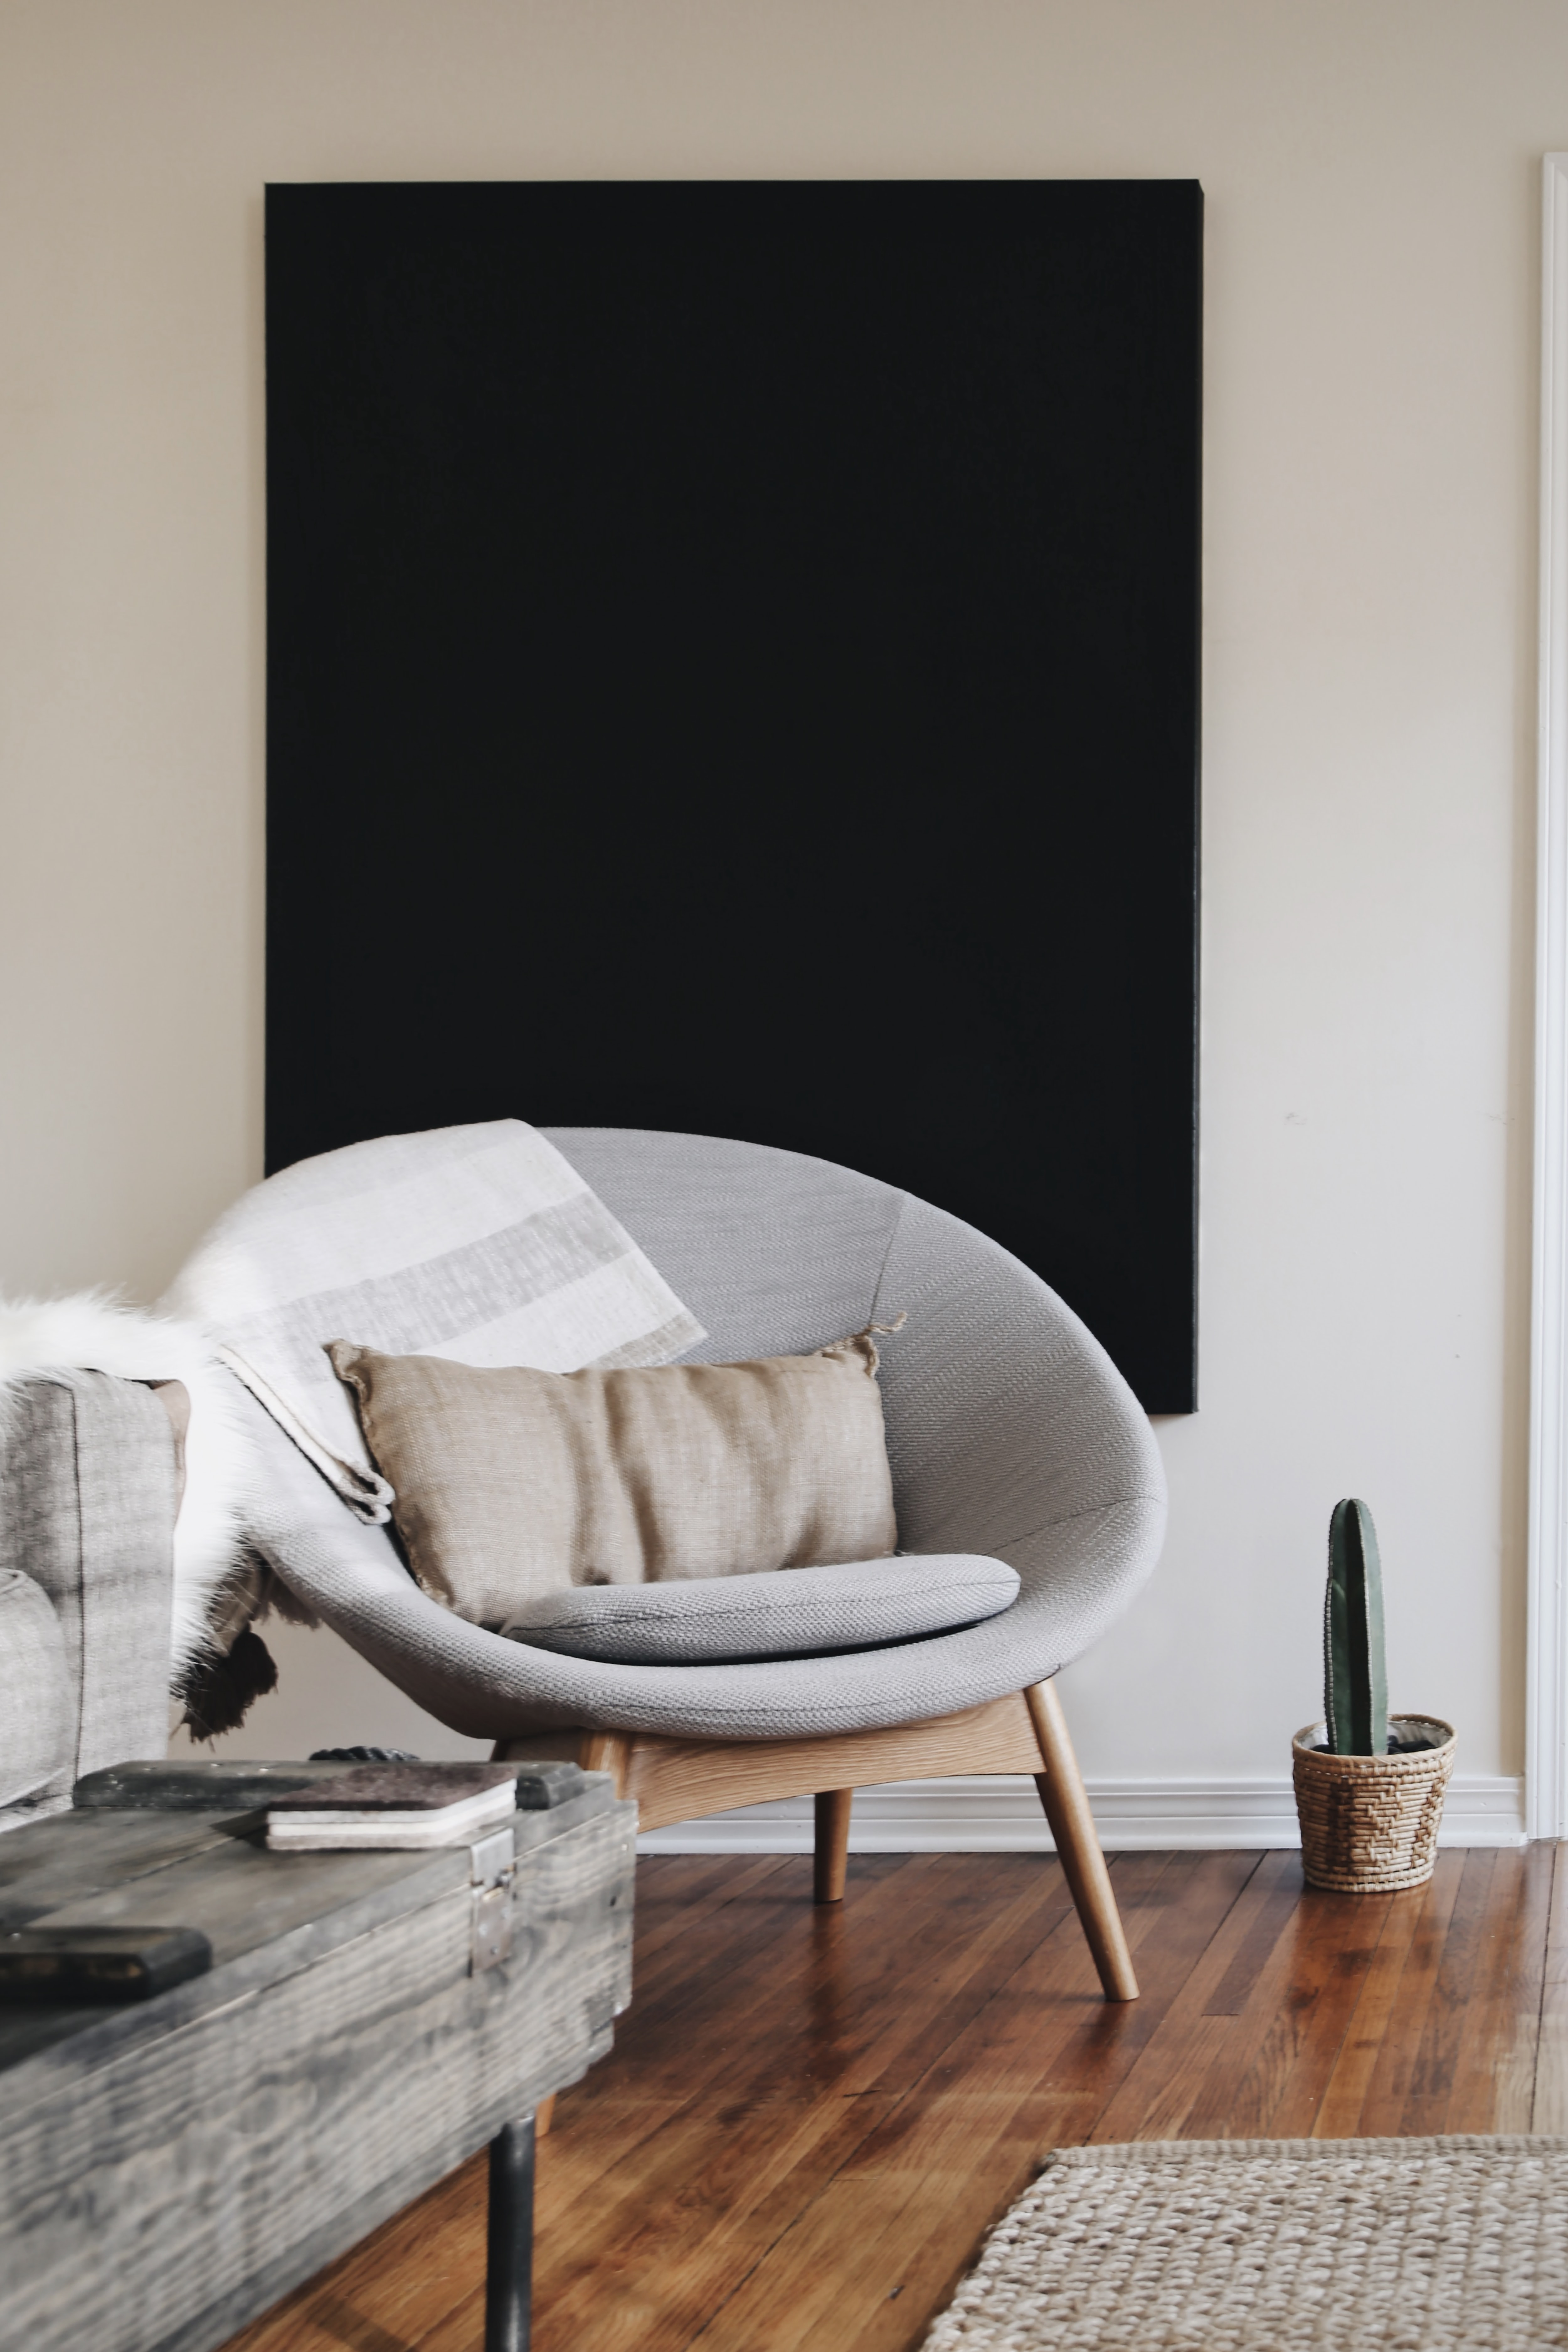 round grey moon chair with brown pillow on top & Interior Design Pictures [HD] | Download Free Images on Unsplash